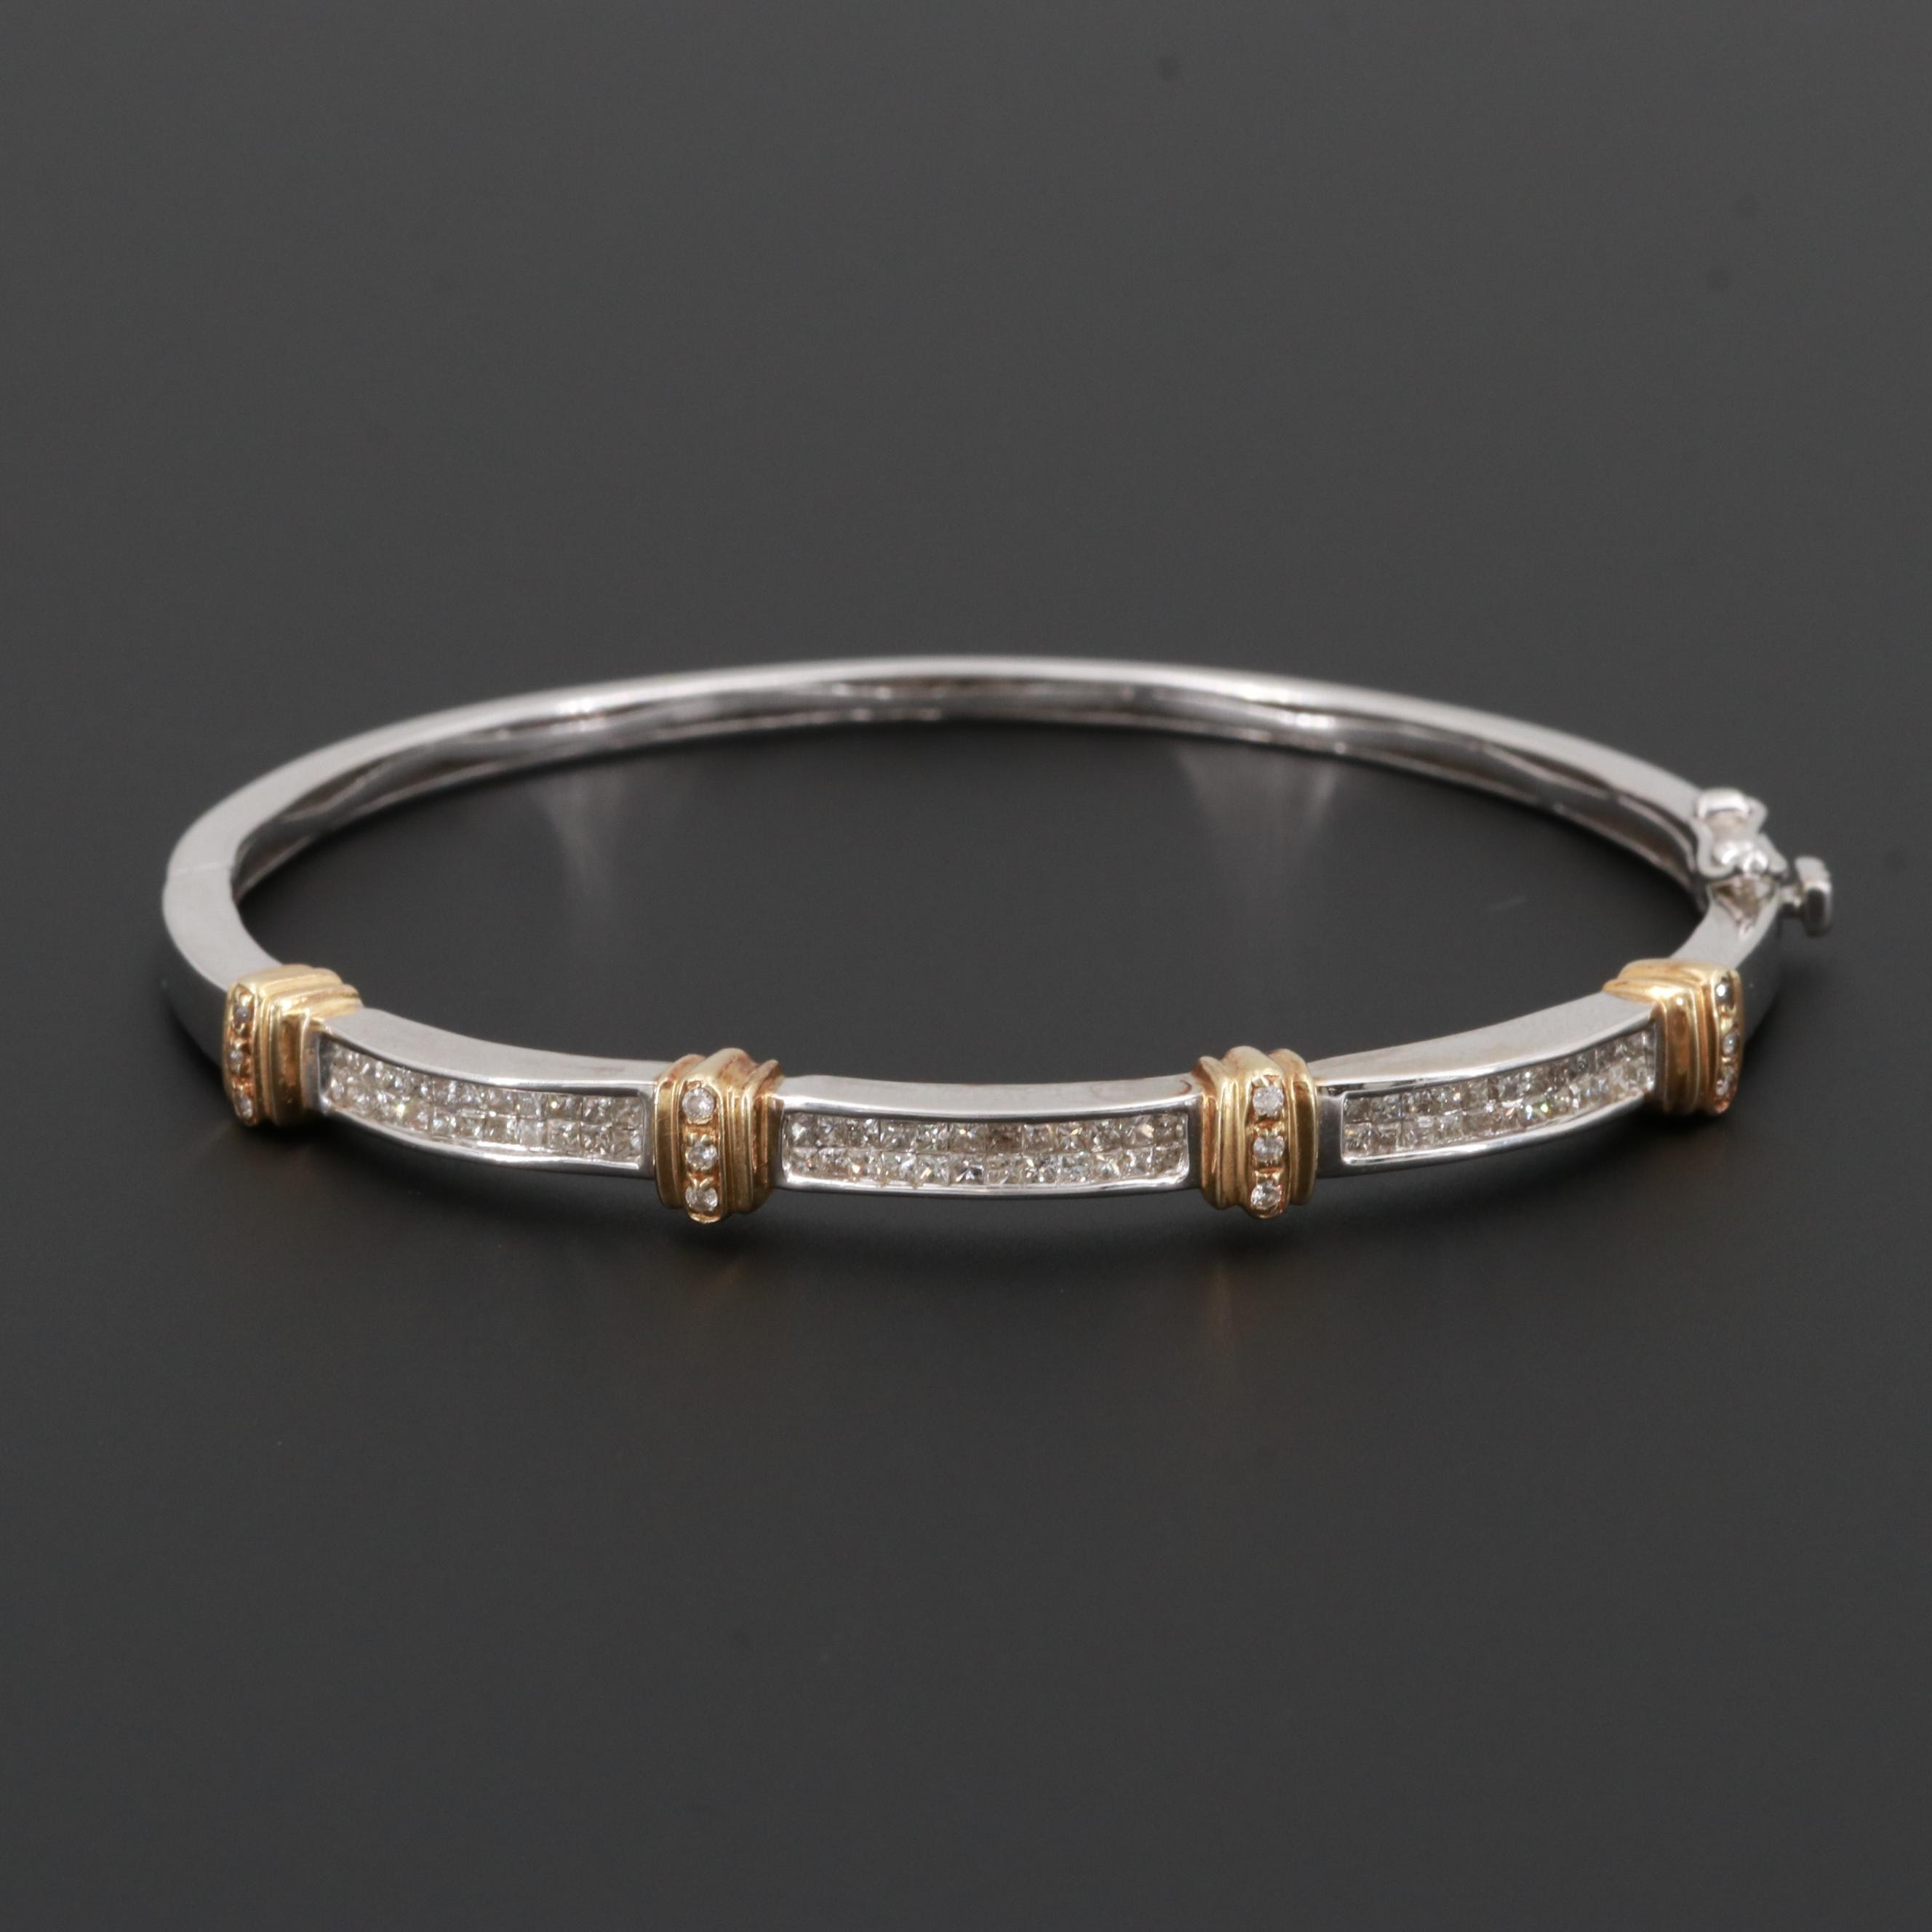 14K White Gold Diamond Hinged Bangle Bracelet with Yellow Gold Accents